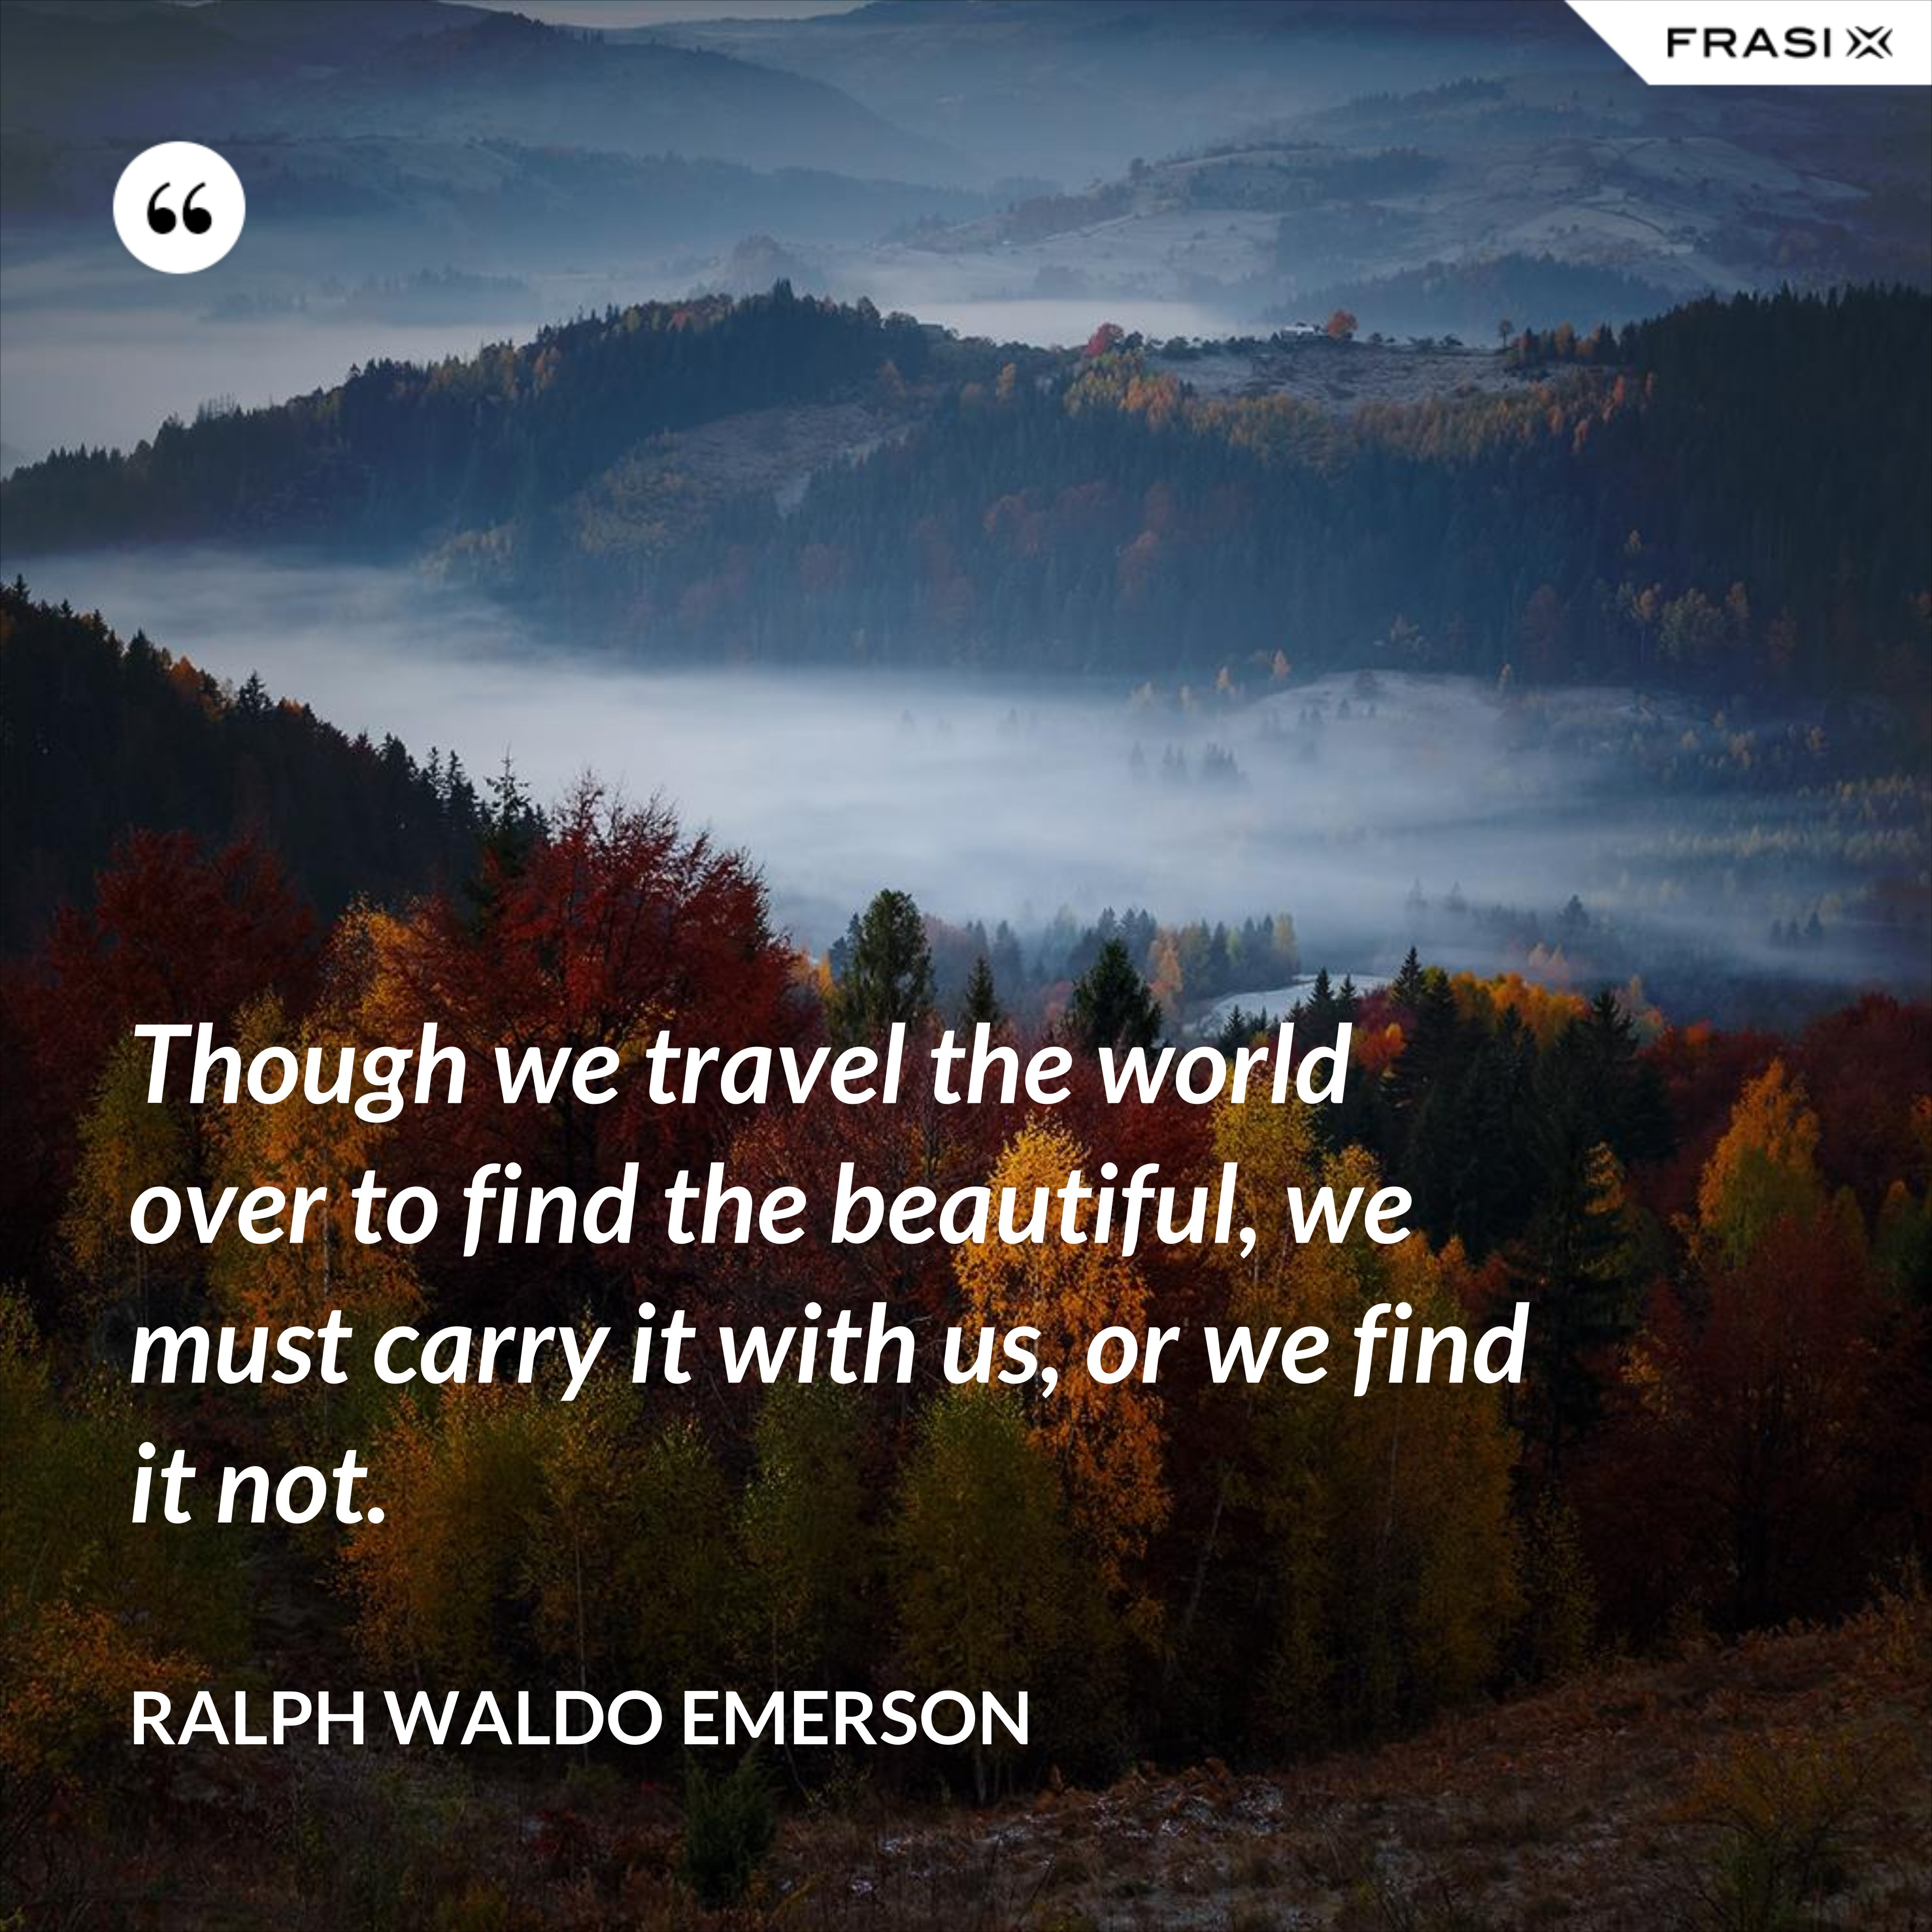 Though we travel the world over to find the beautiful, we must carry it with us, or we find it not. - Ralph Waldo Emerson